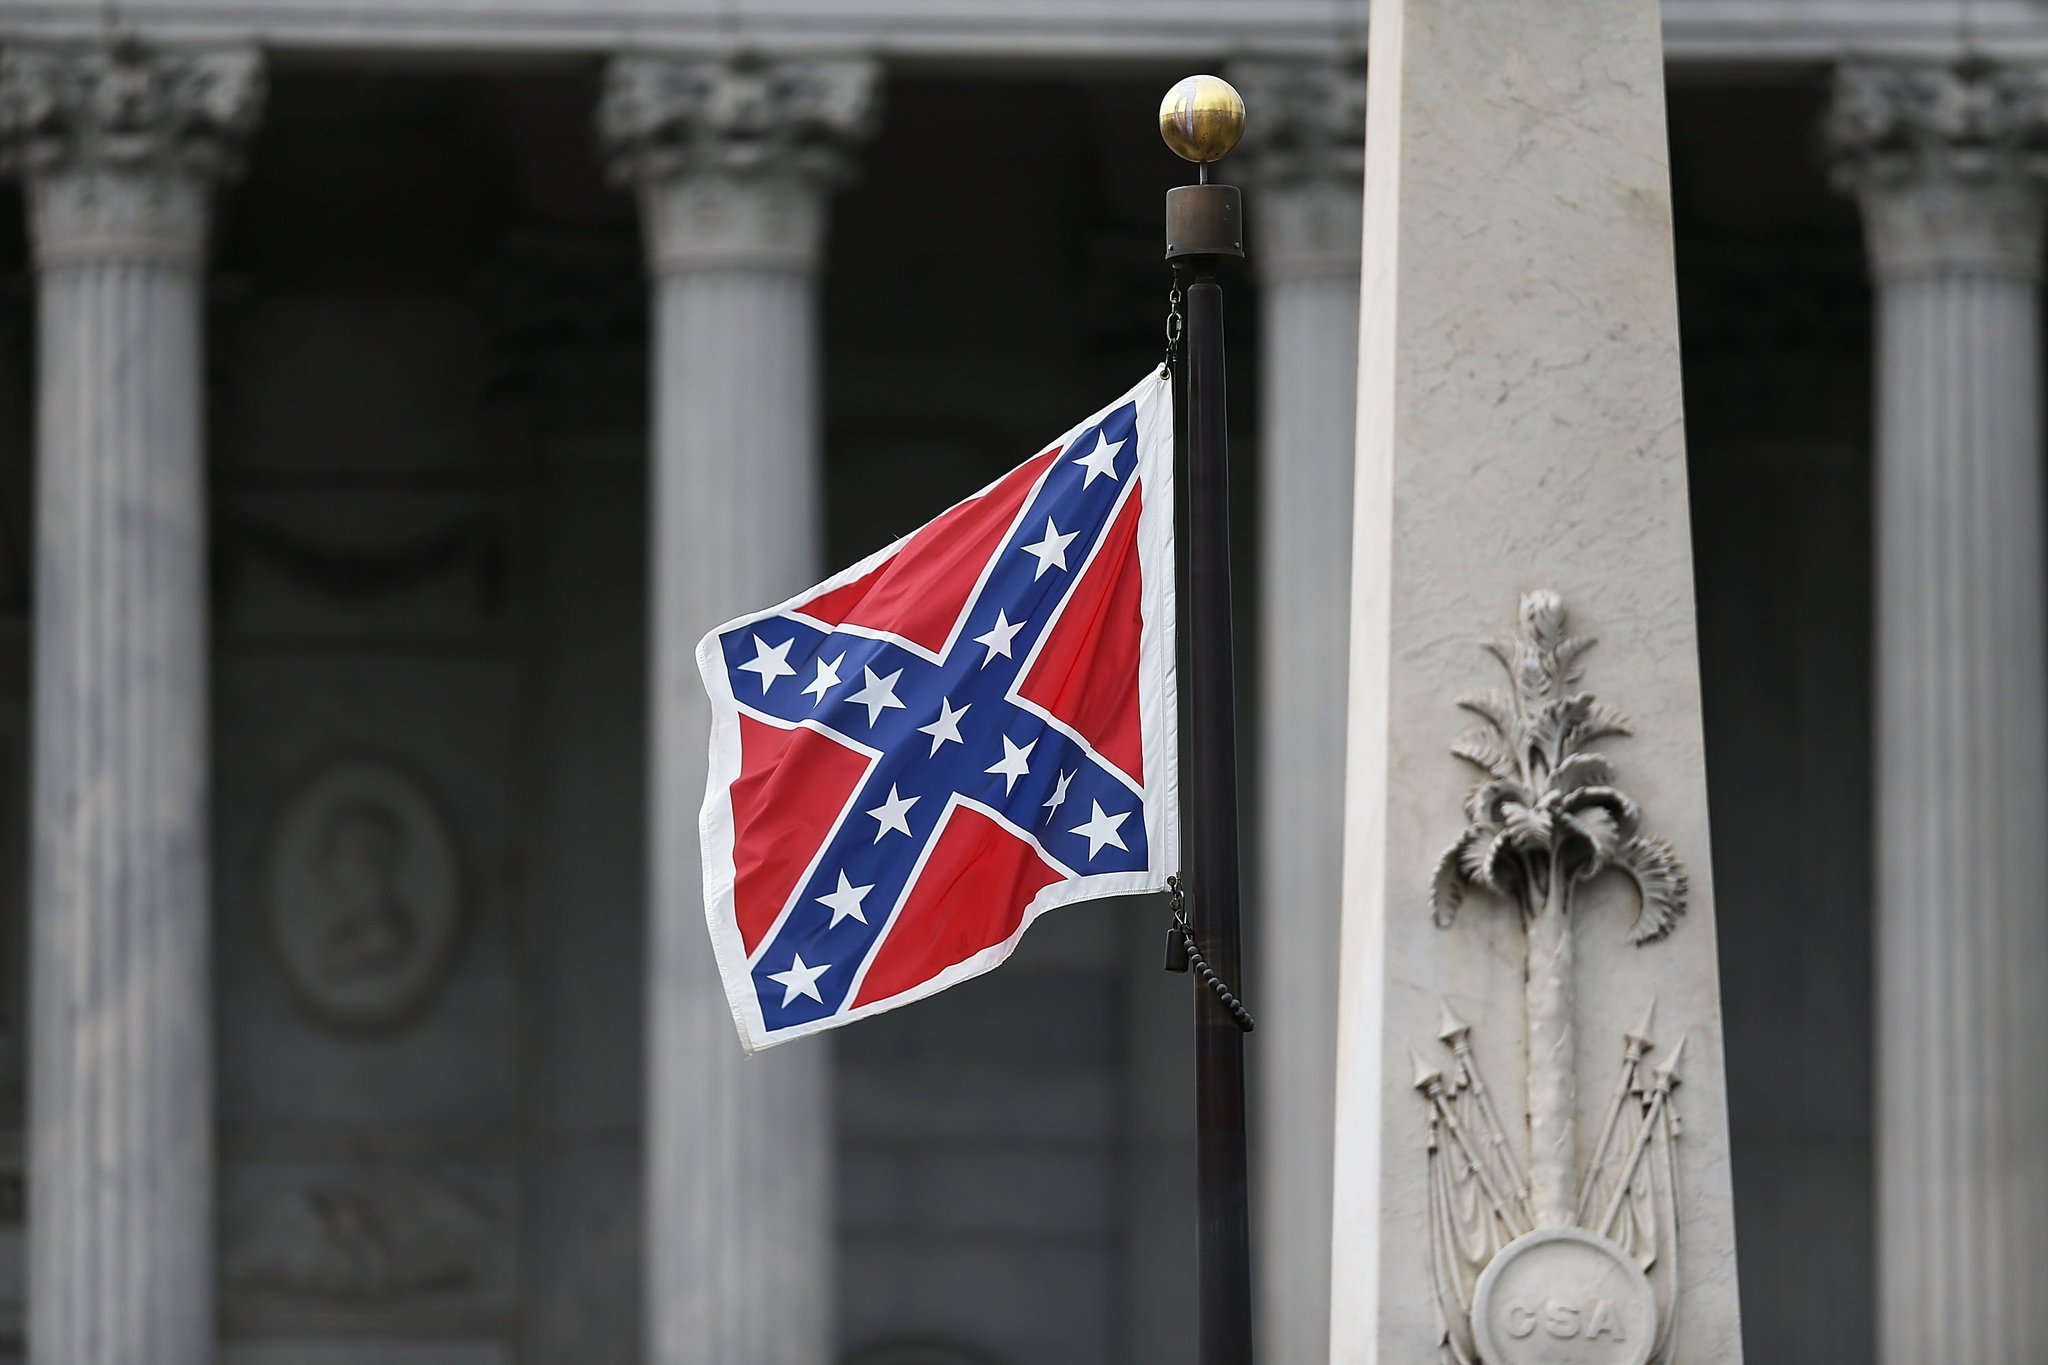 a description of the confederate flag in south carolina South carolina removed the confederate flag from the statehouse where it had flown for more than a half-century, after weeks of emotional debate sparked by a crowd of thousands cheered and sang as the flag was lowered down the 30-foot pole state troopers in gray uniforms and white gloves carefully.